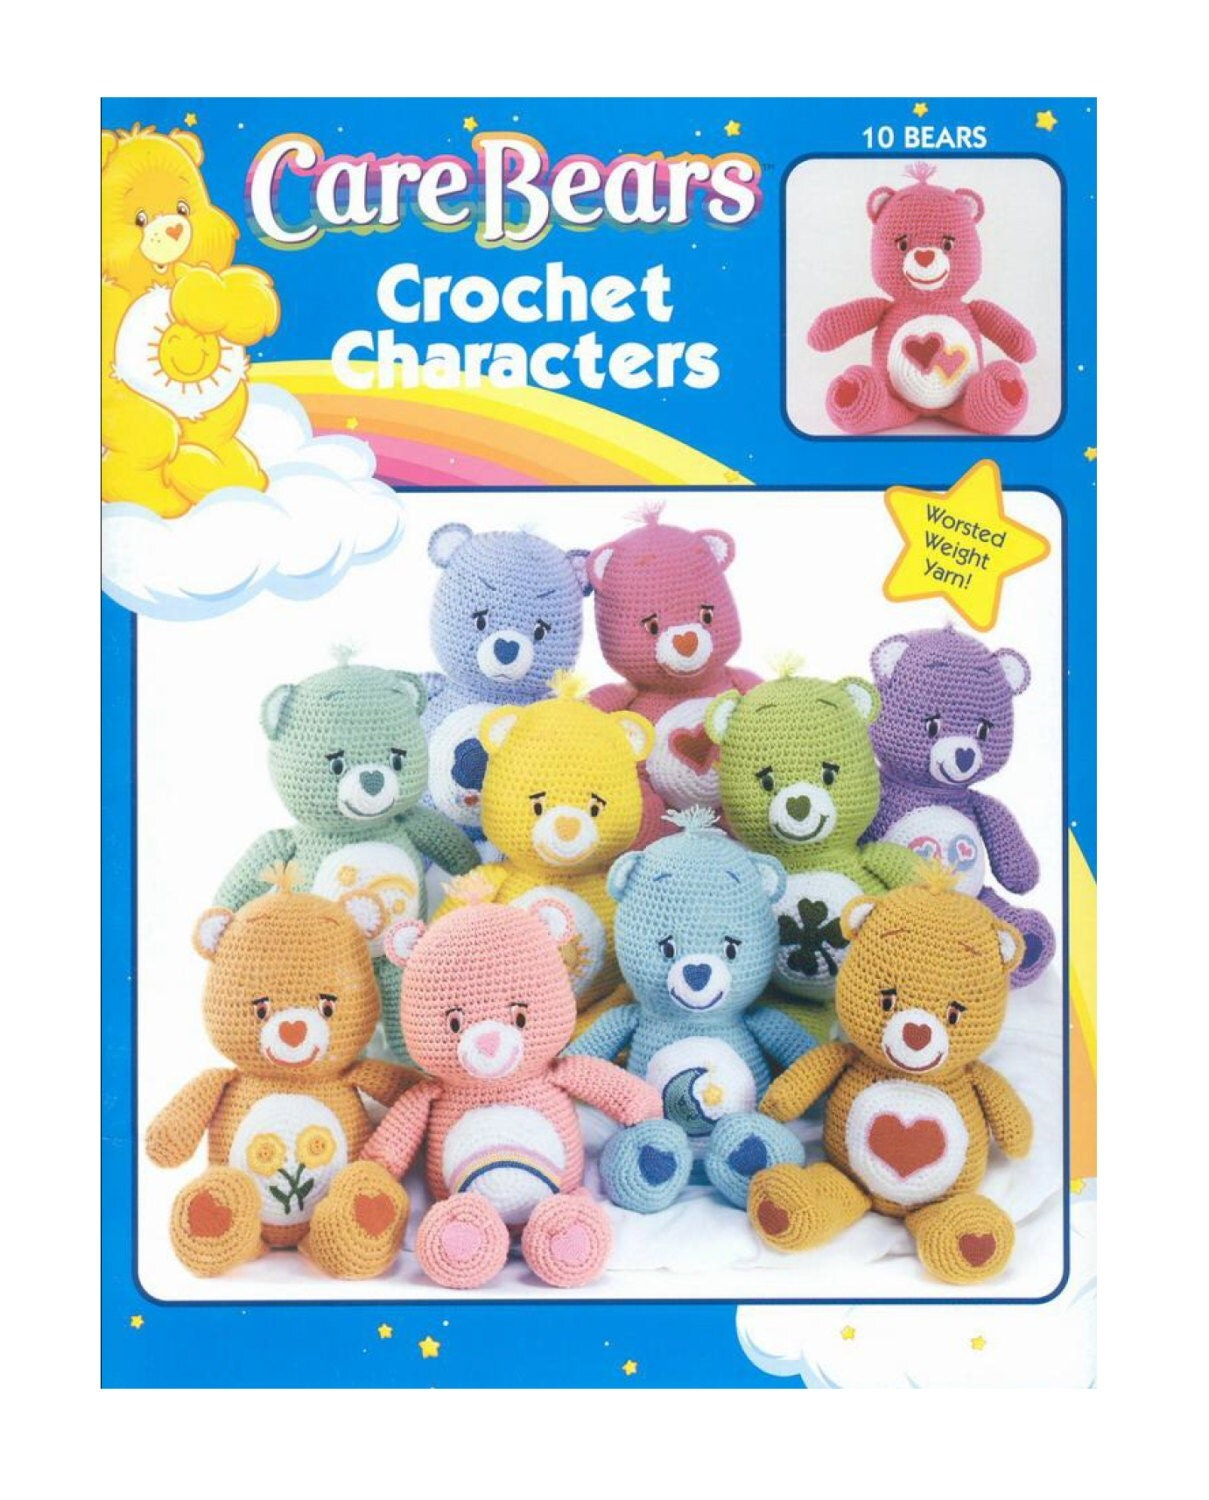 Care bear crochet pattern book soft toy amigurumi soft toy zoom bankloansurffo Choice Image